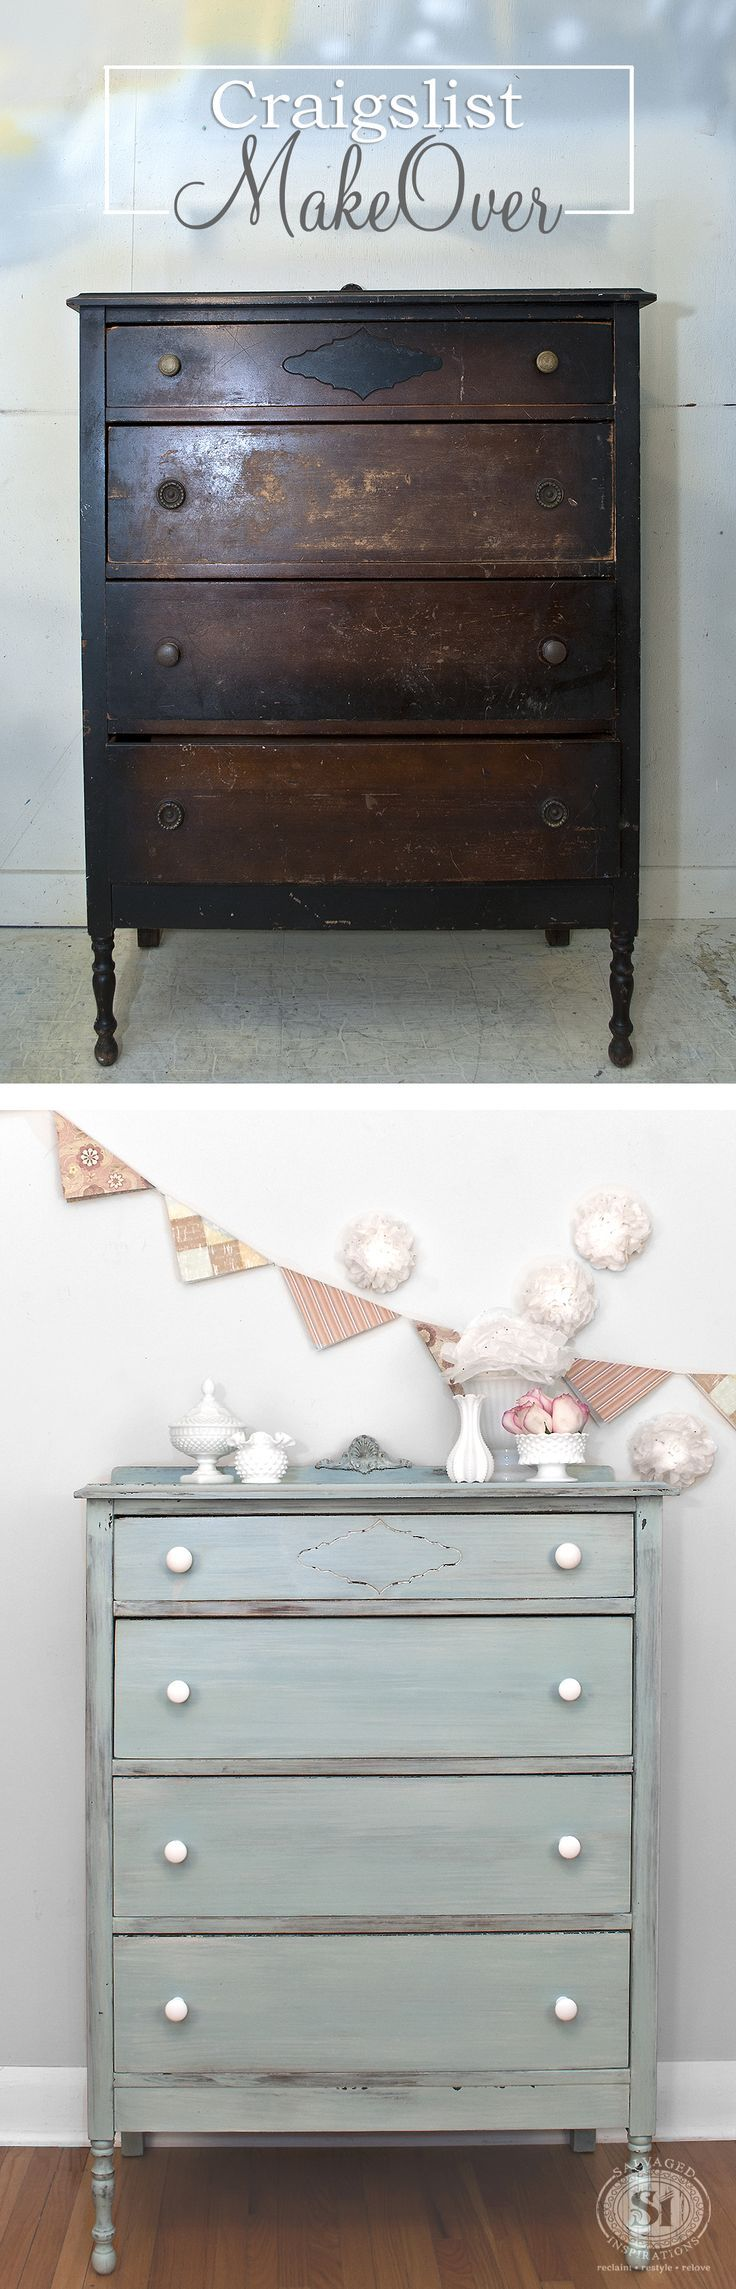 Before & After Craigslist Vintage Dresser Makeover | Layered Milk Paint | Miss Mustard Seed's Eulalie's Sky and Grain Sack | Salvaged Inspirations